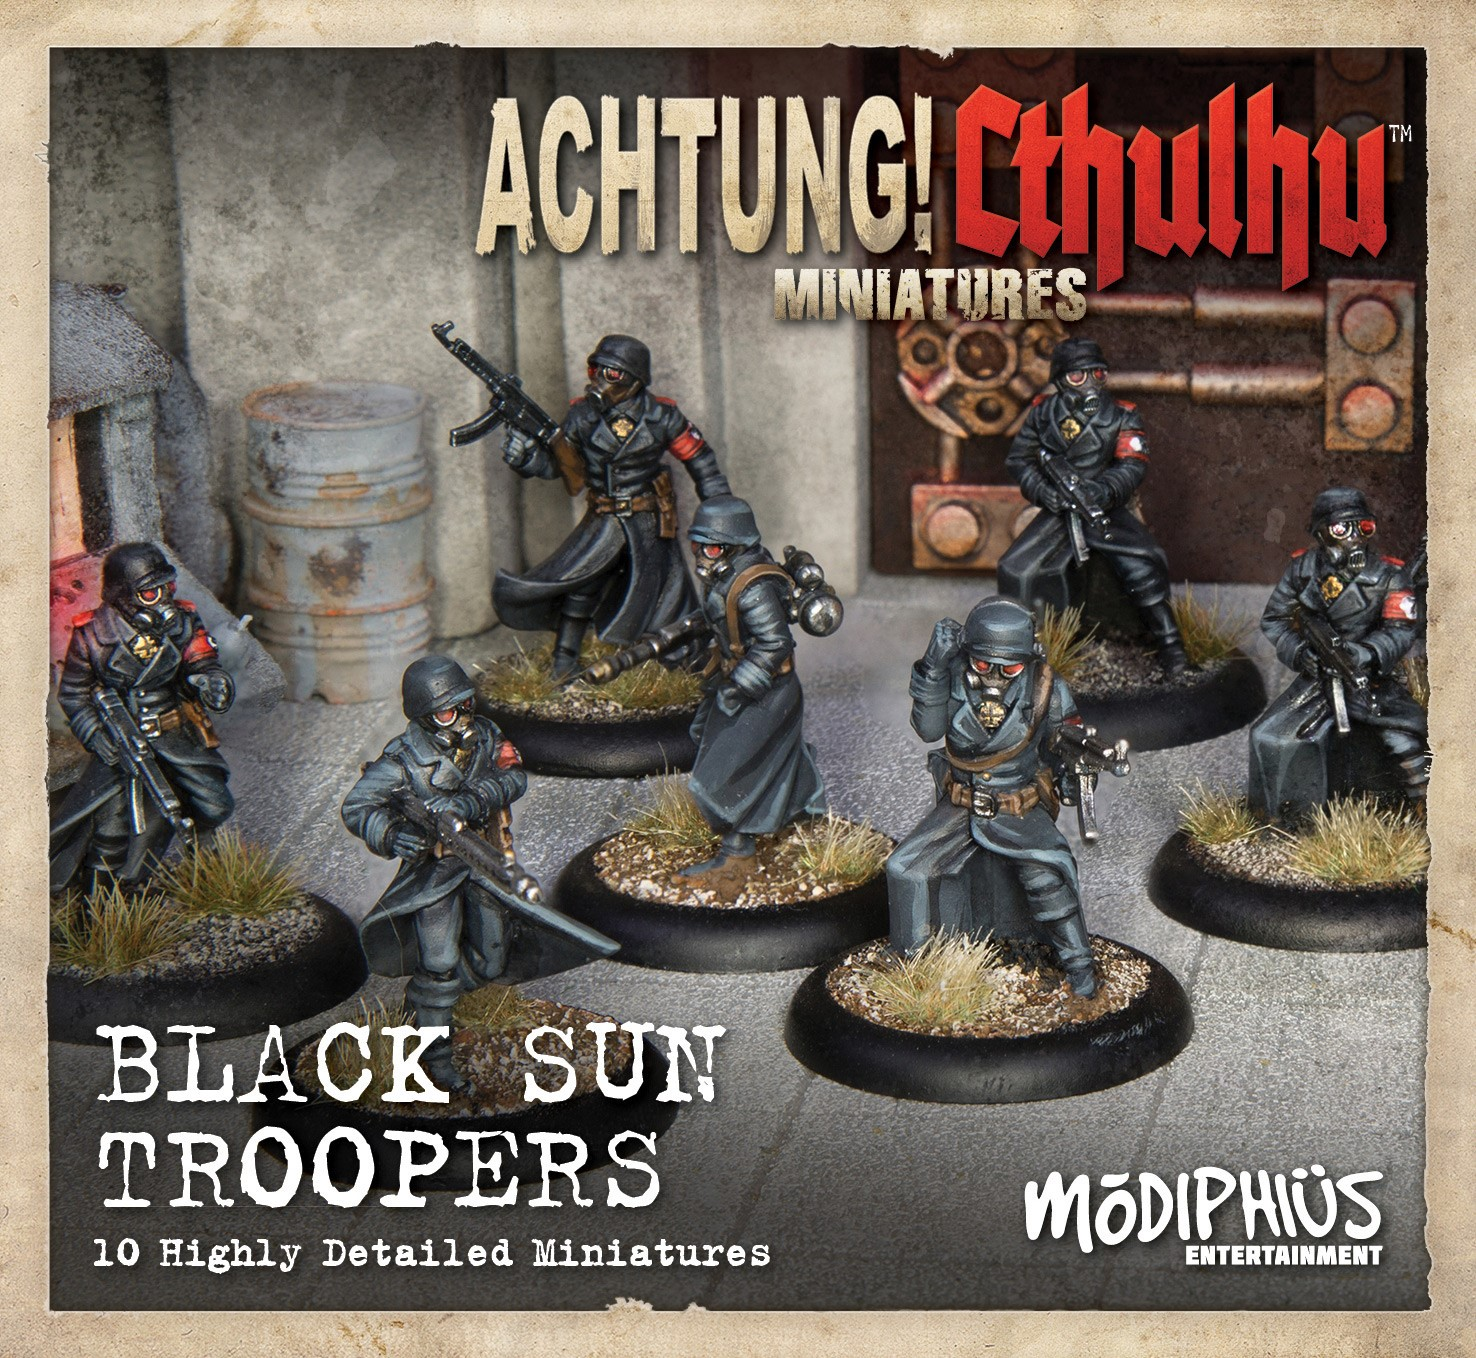 Achtung! Cthulhu Miniatures: Black Sun Troopers Unit Pack